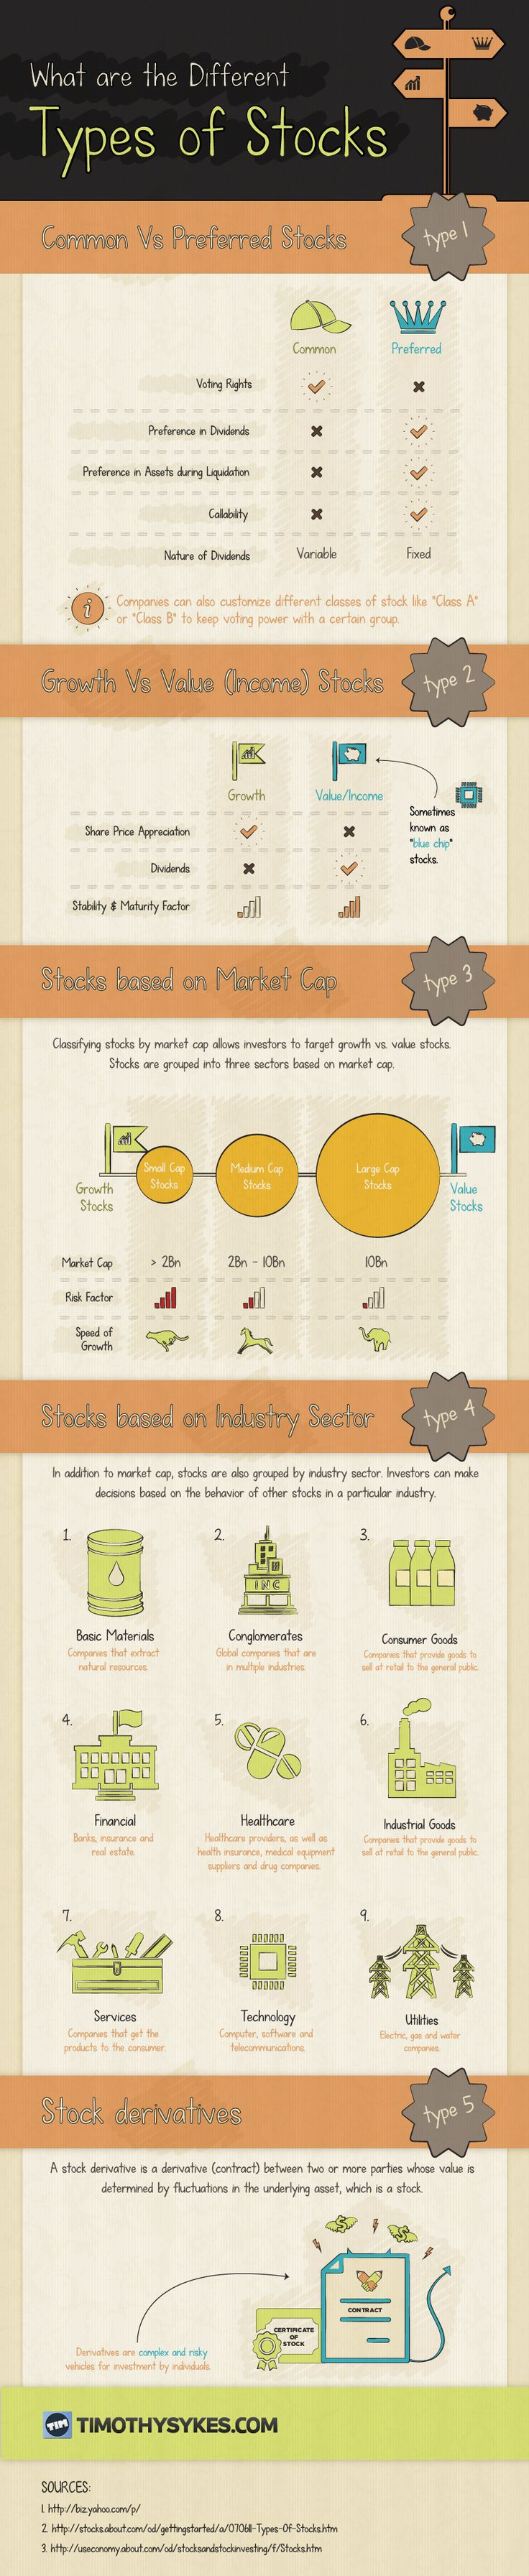 What Are The Different Types of Stocks? #infographic #Stock #StockBroker  http://www.tradingprofits4u.com/